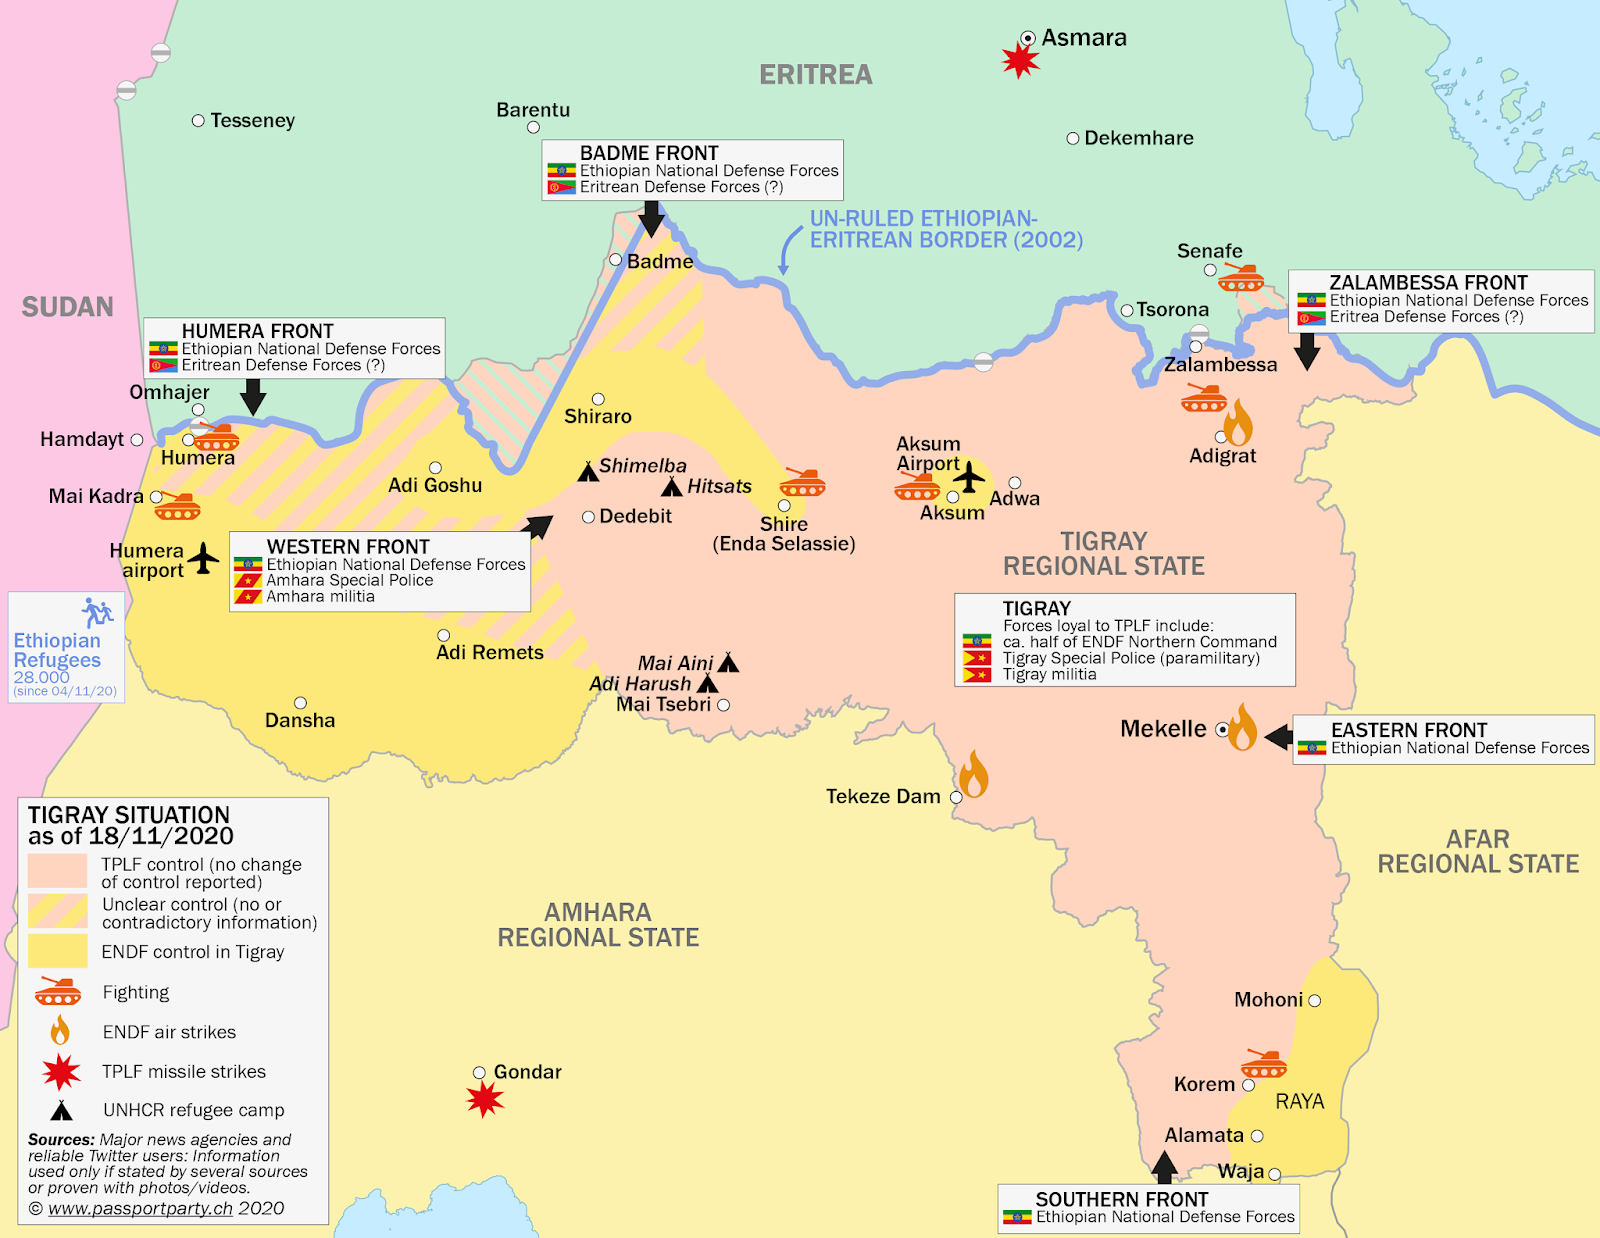 Tigray control map: Rough illustration of territorial control in Ethiopia's Tigray war as known November 18, 2020, showing areas believed to have been captured by Ethiopian government forces as well as areas occupied along the disputed border with Eritrea.